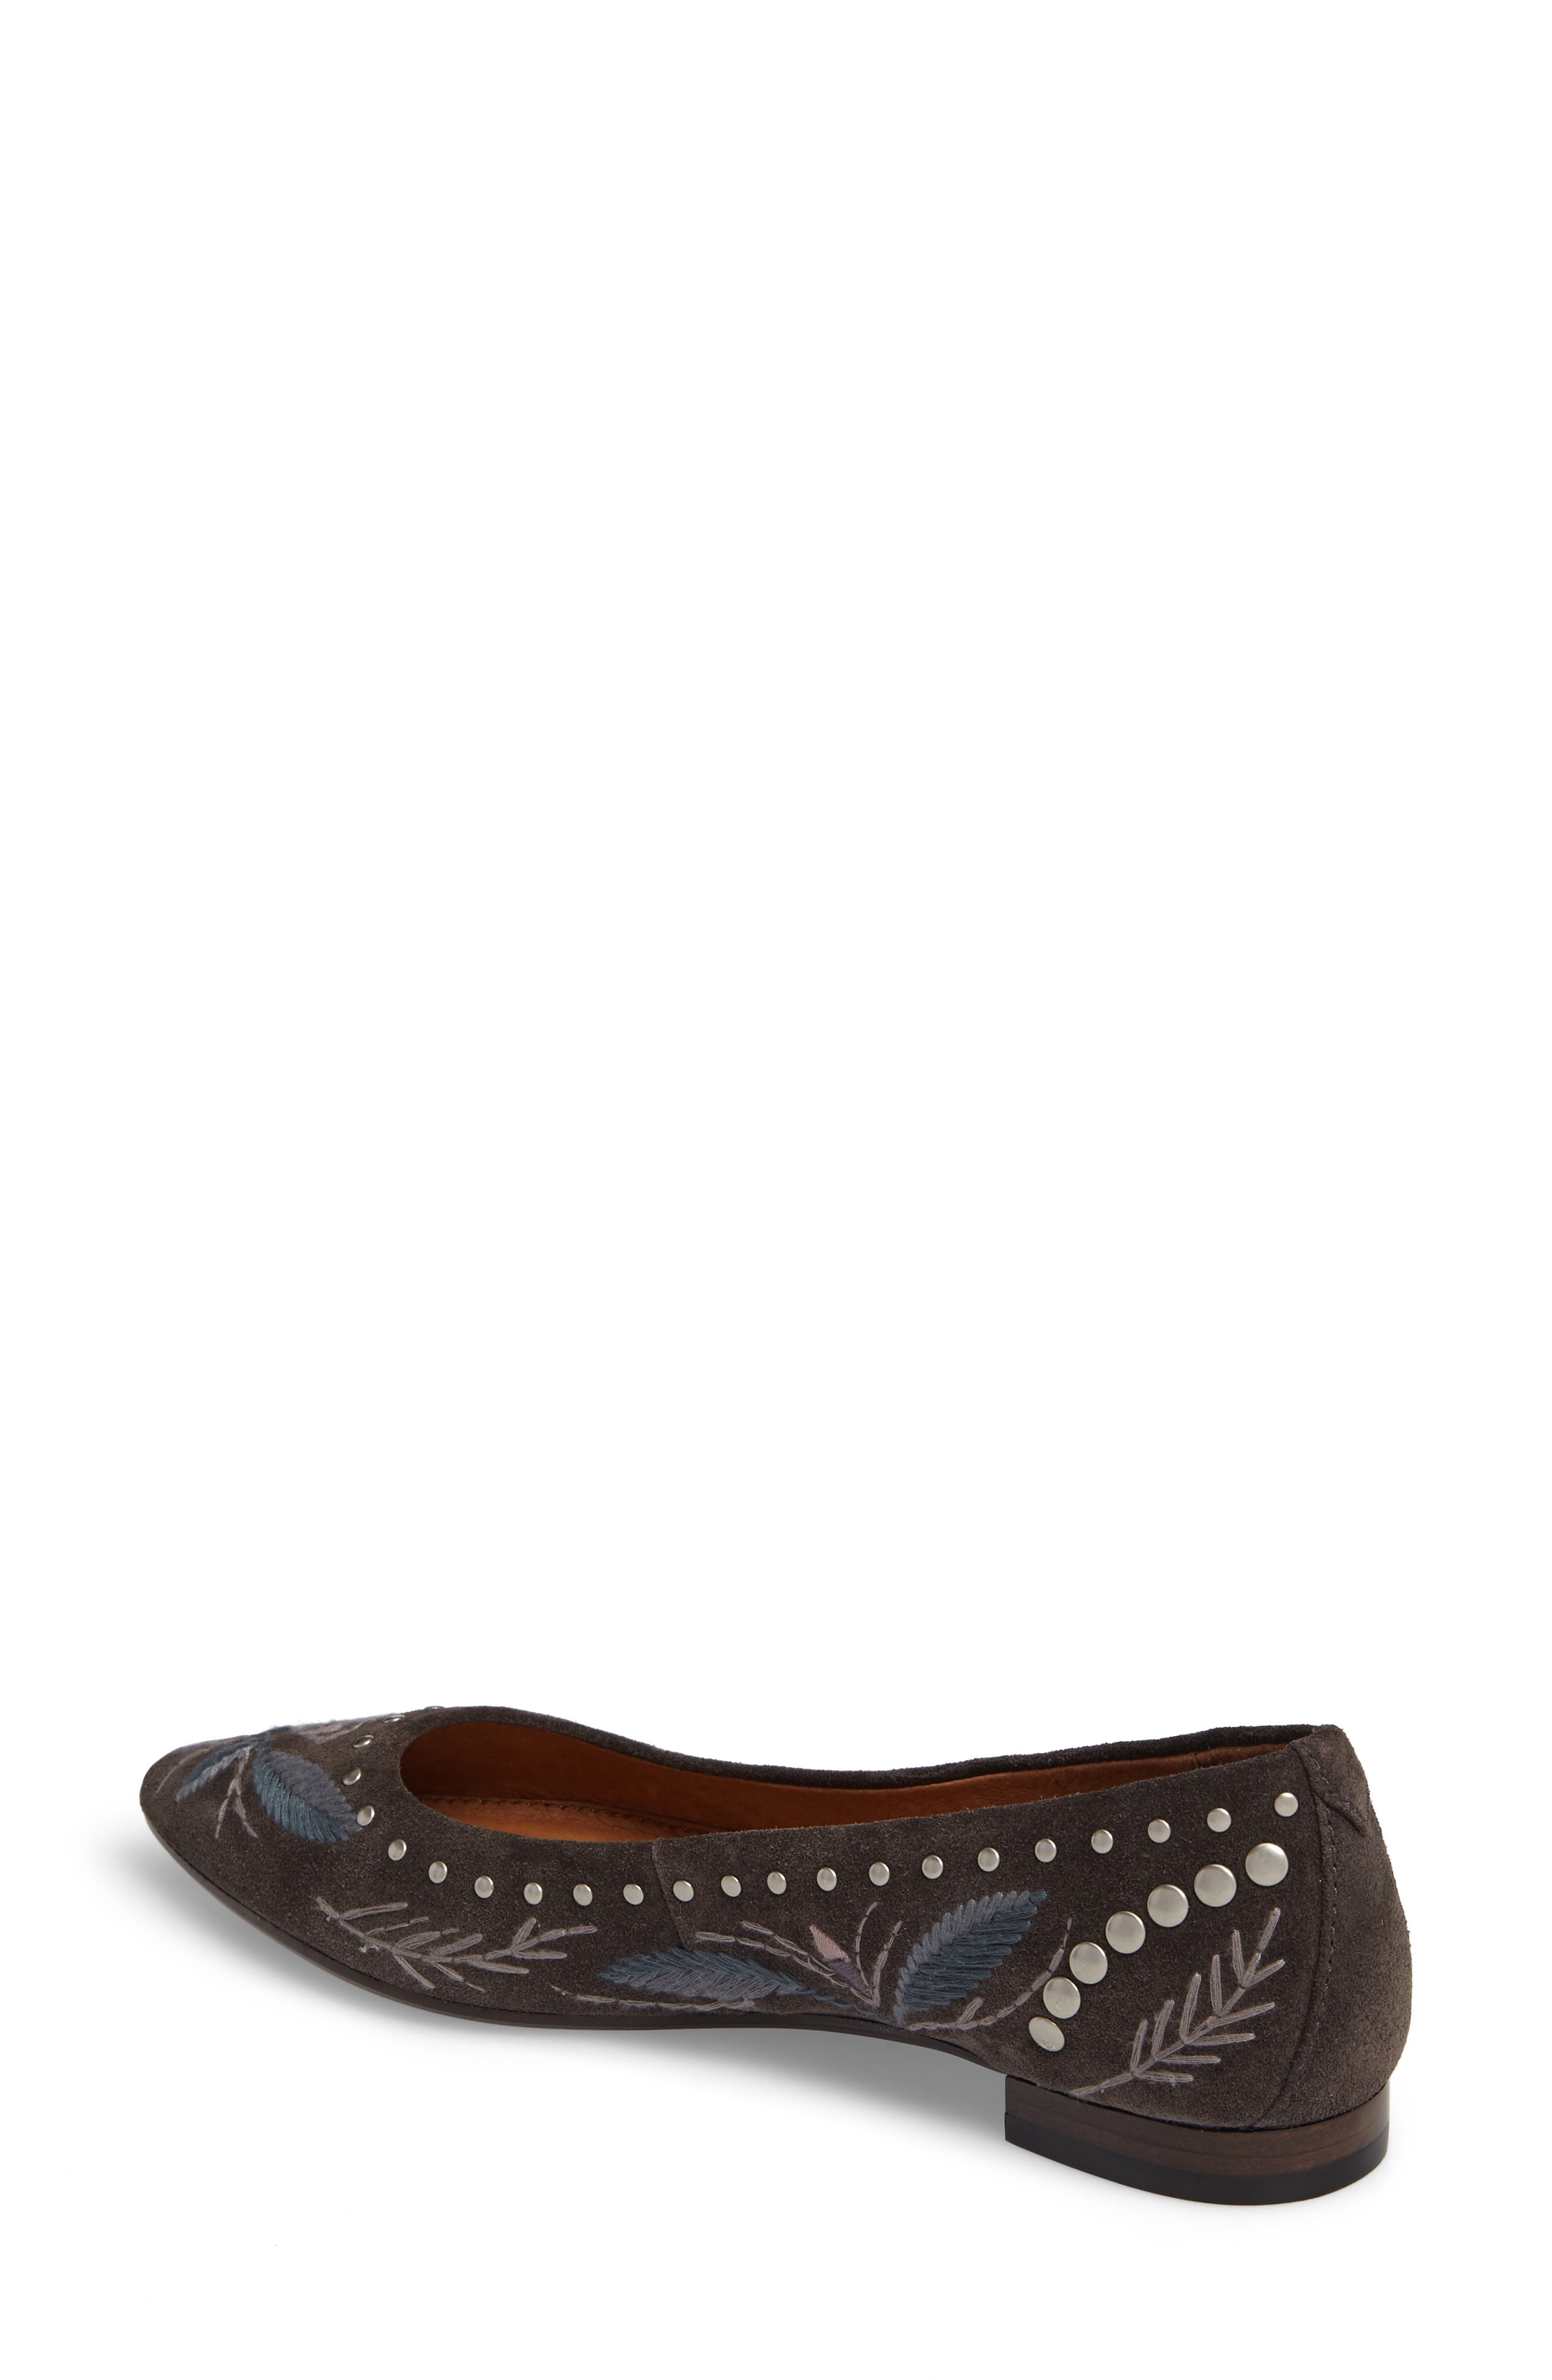 Alternate Image 2  - Frye Sienna Embroidered Ballet Flat (Women)